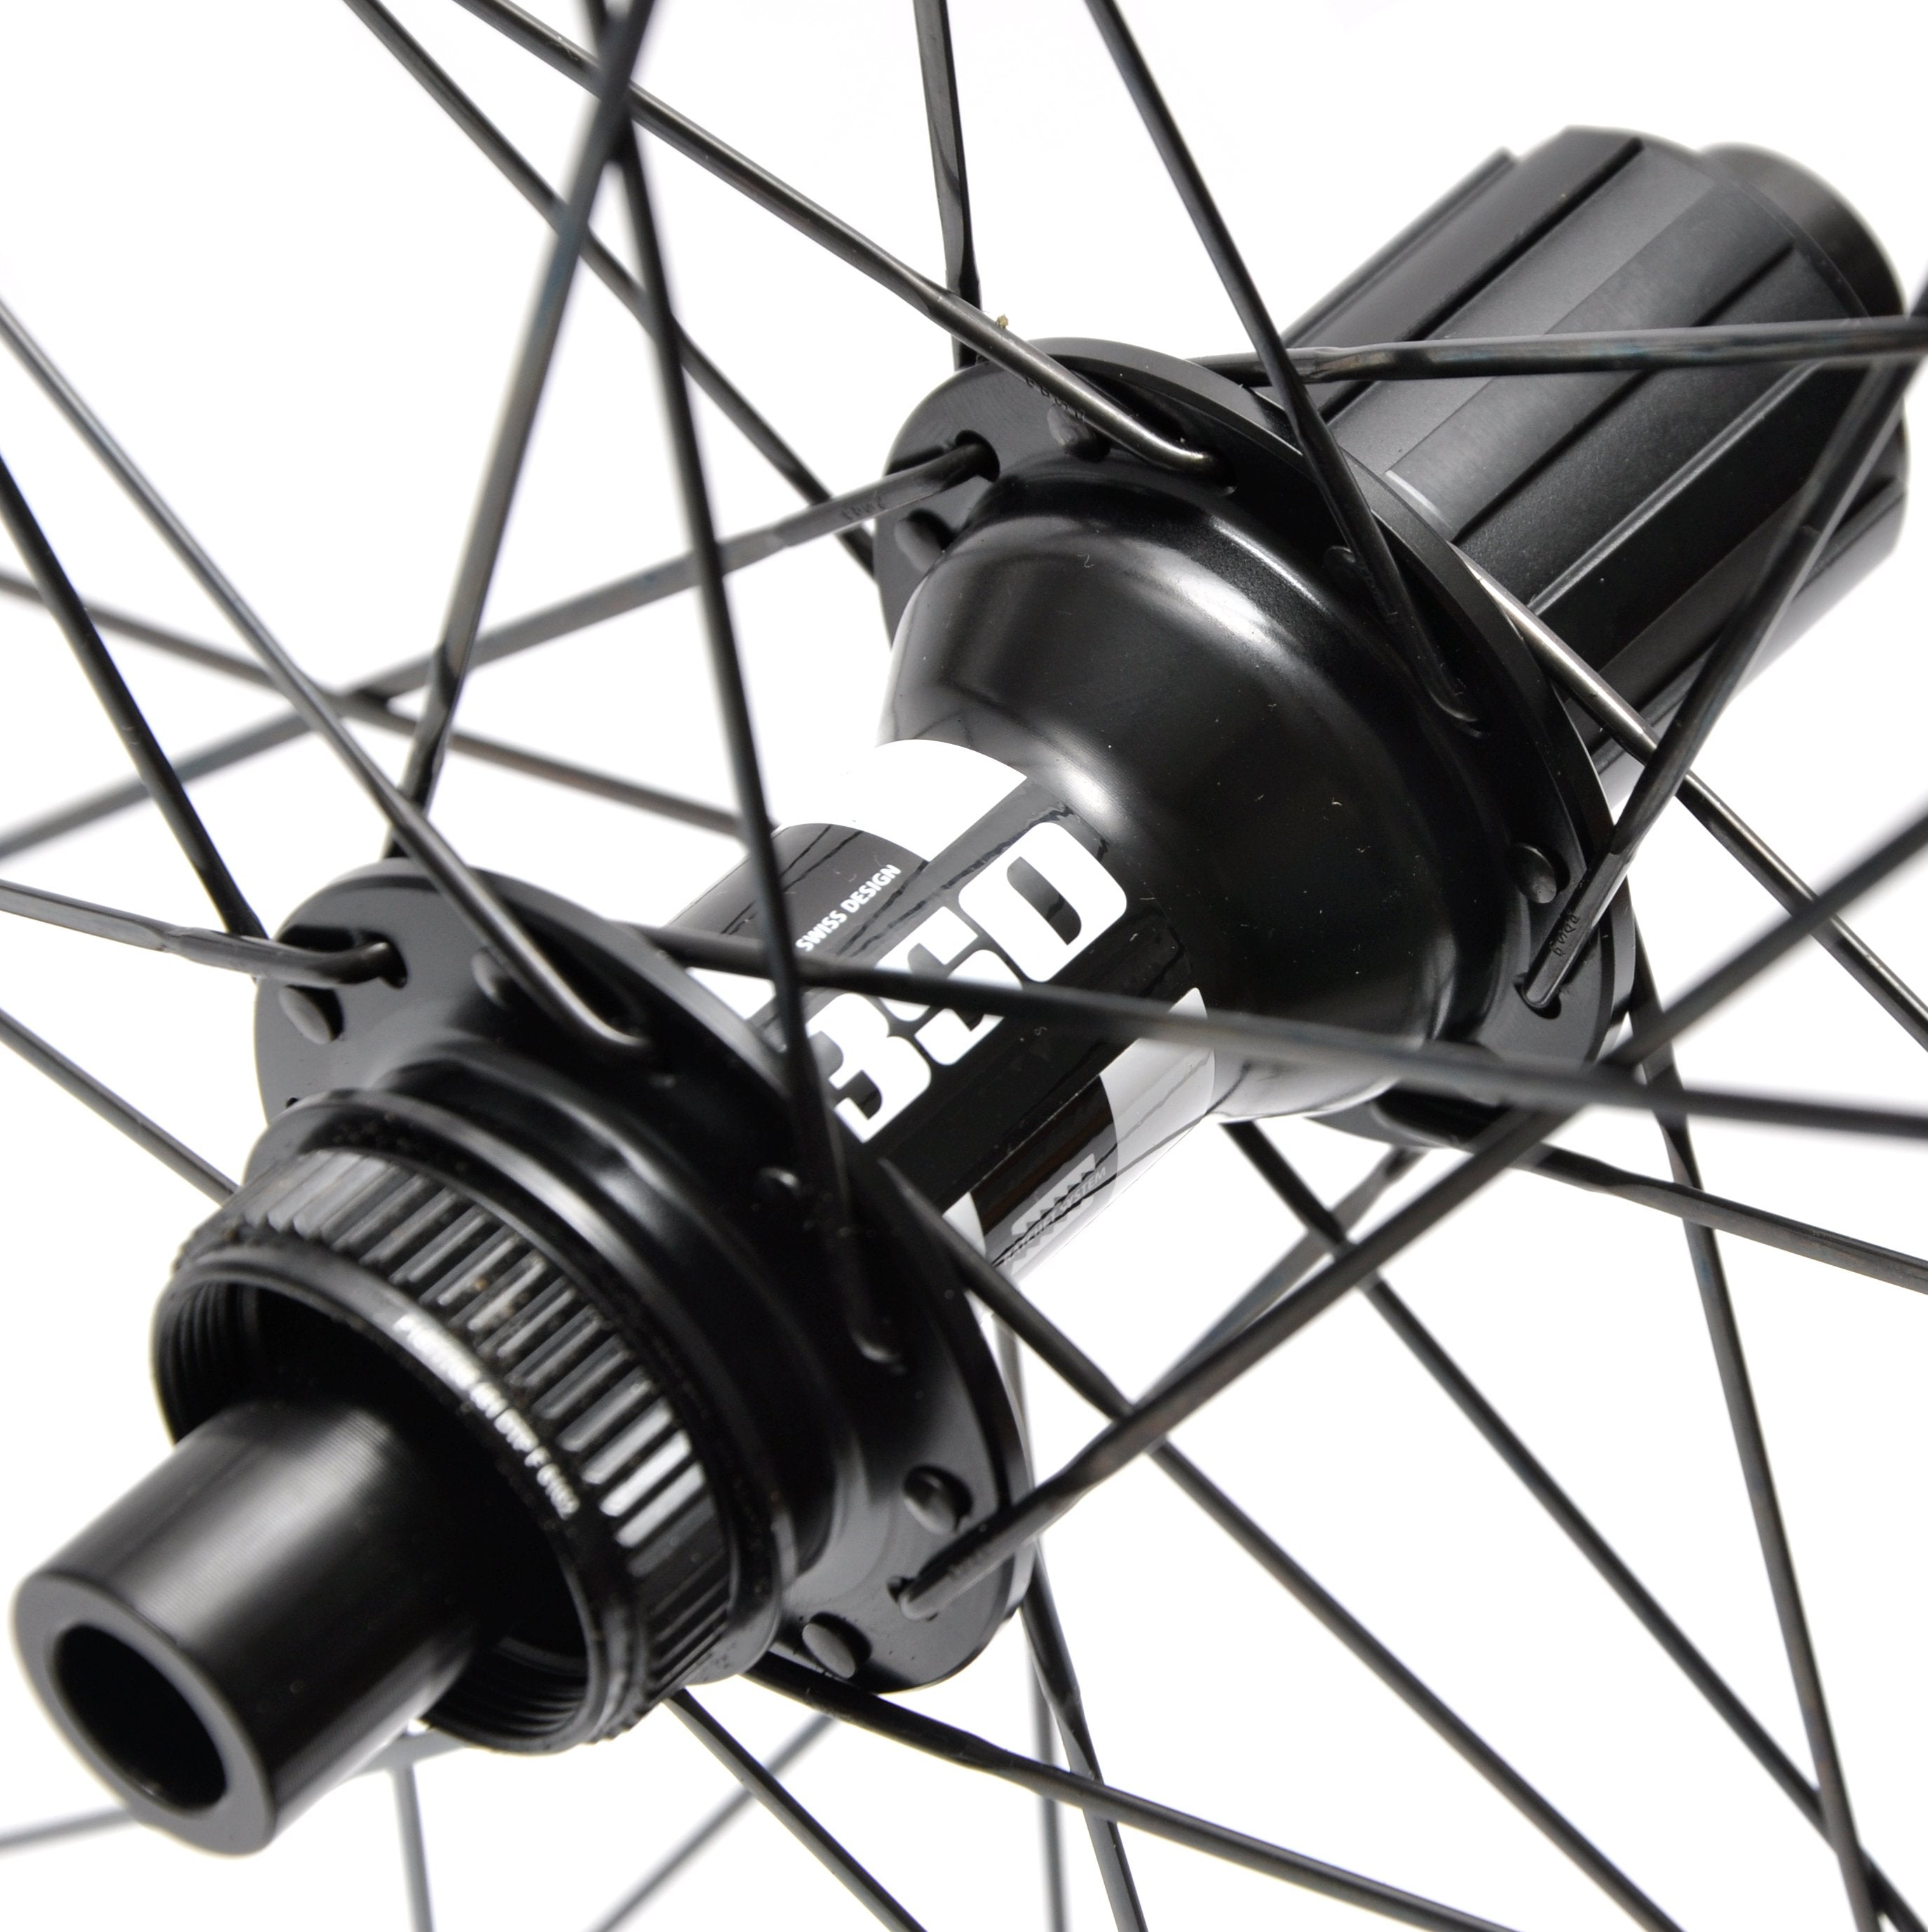 LOWMASS Custom Hub Builds